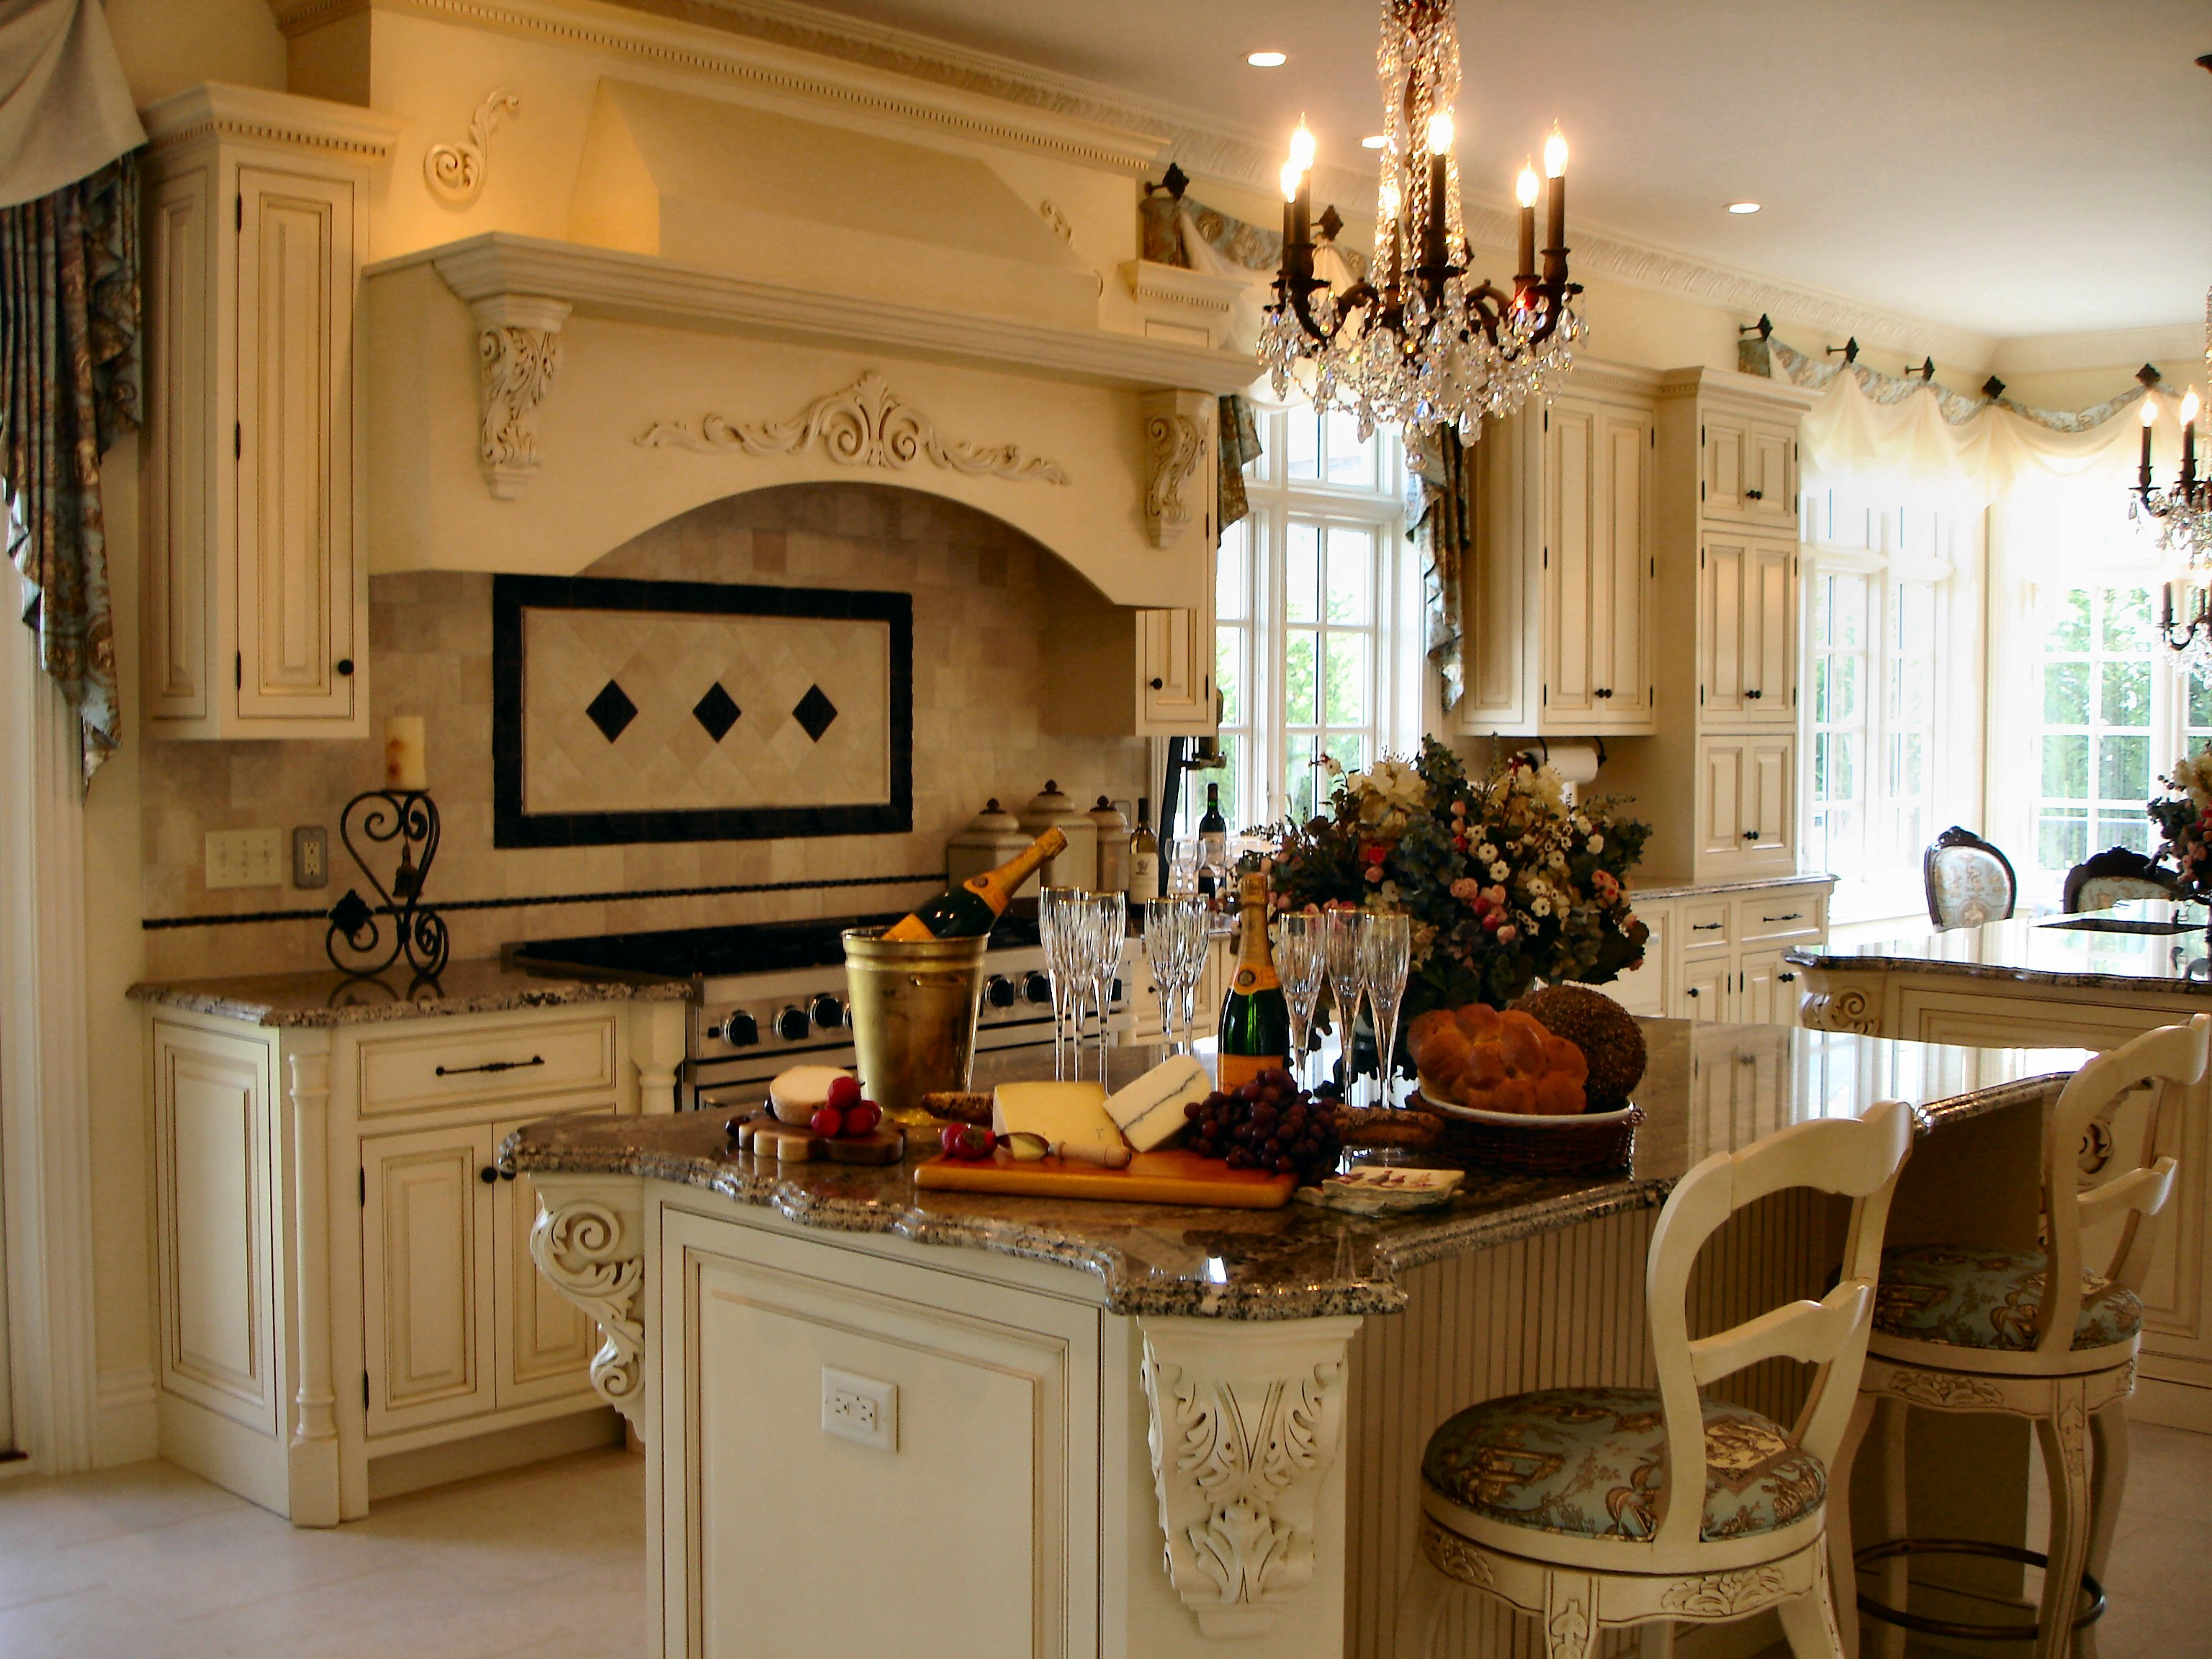 Best ideas about Remodel Kitchen Ideas . Save or Pin Monmouth County Kitchen Remodeling Ideas to Inspire You Now.